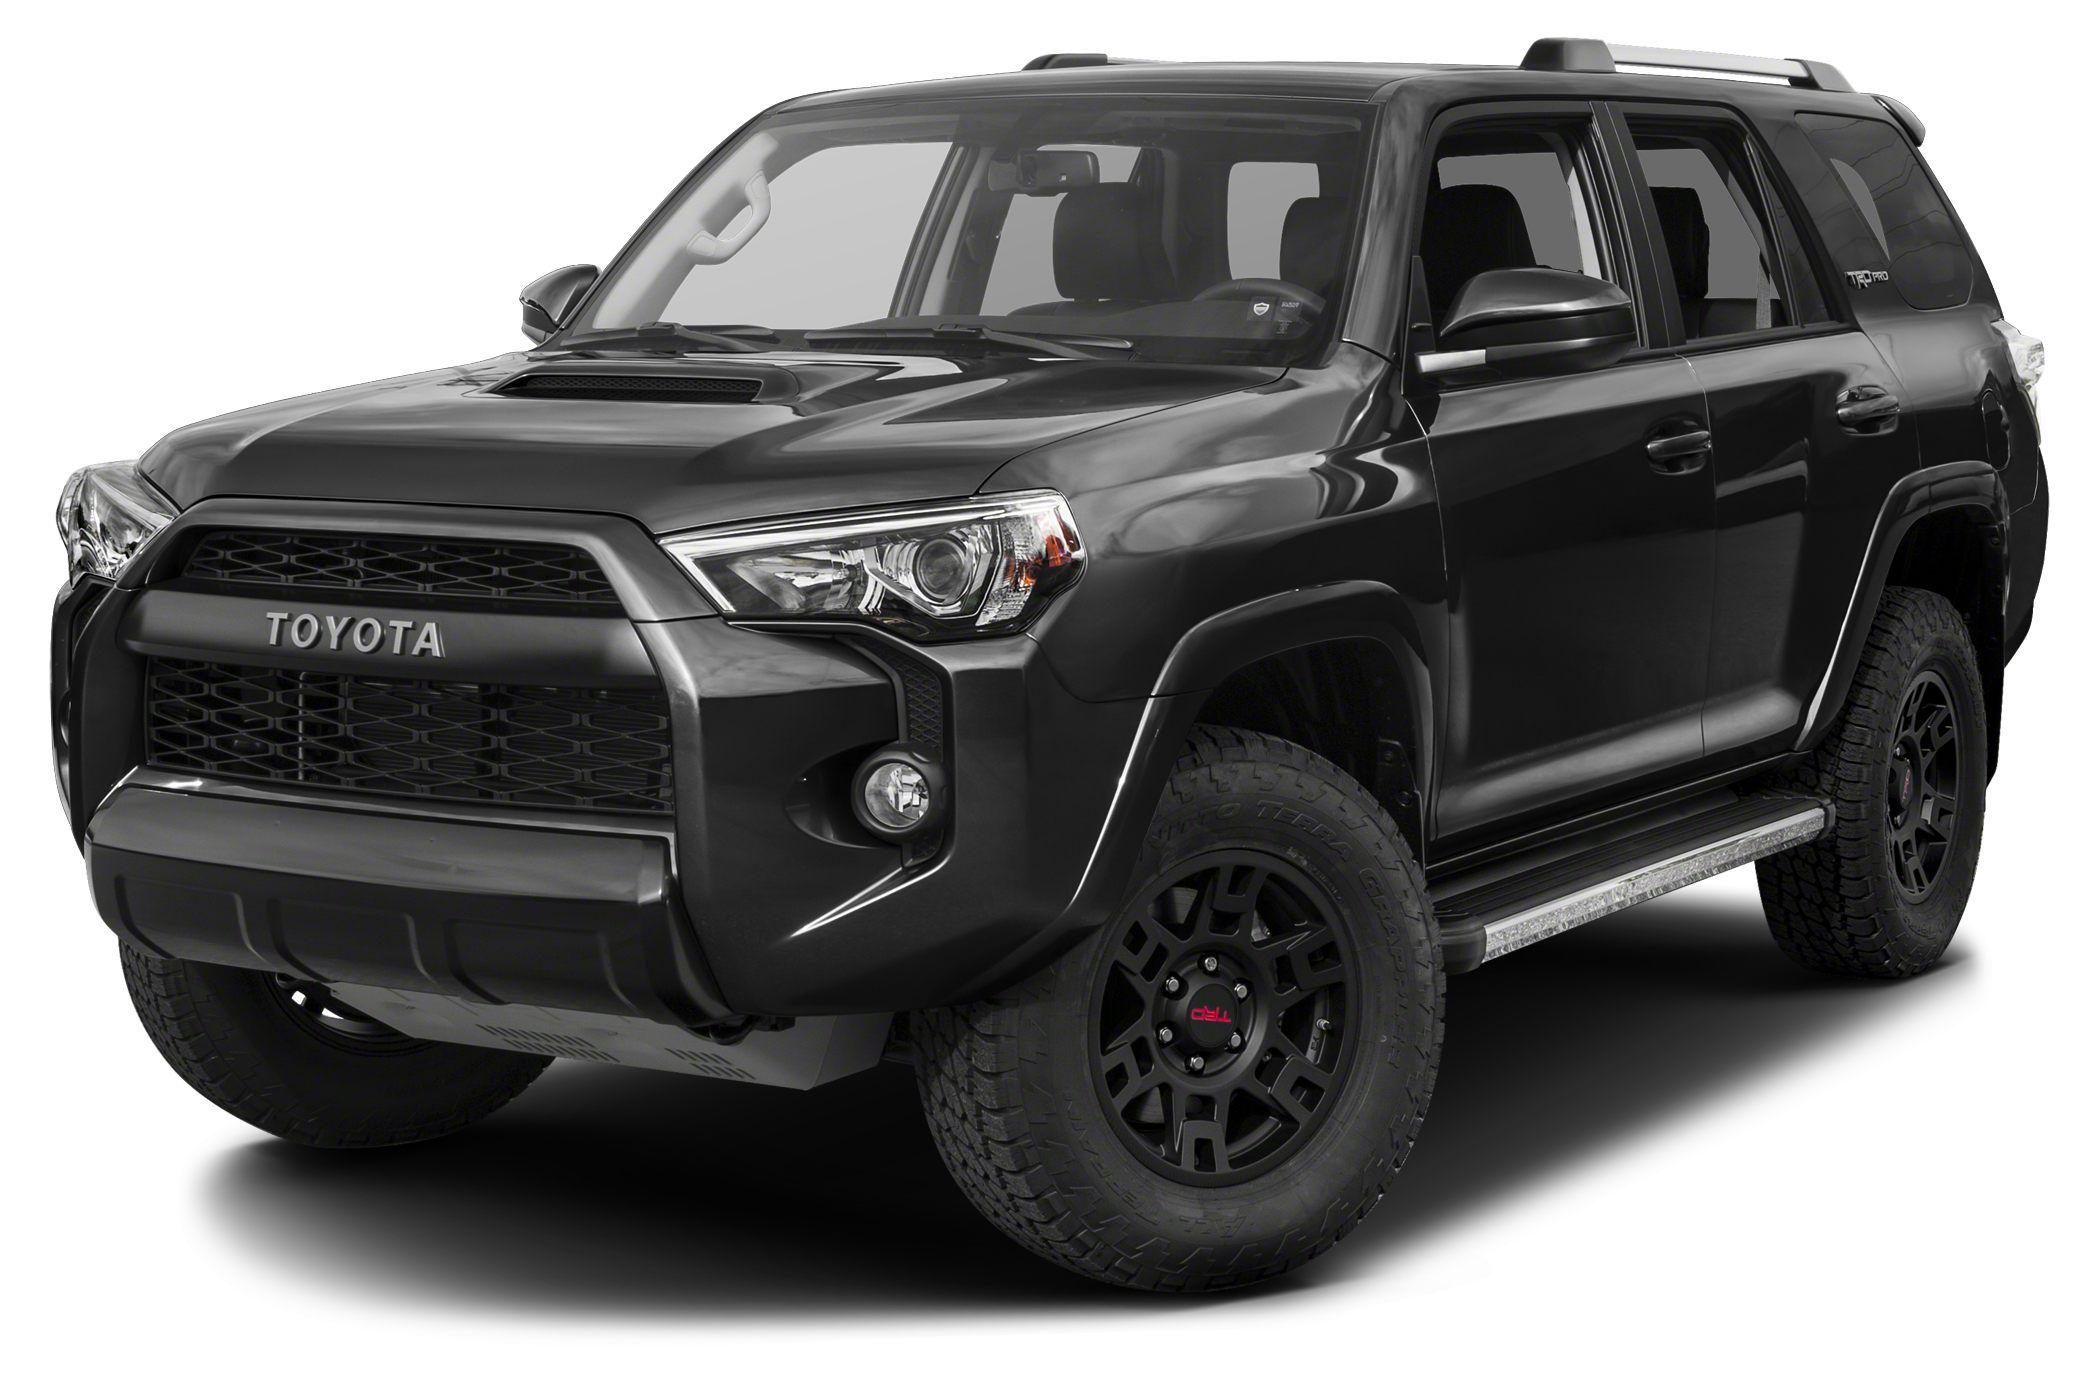 Image result for 2017 toyota 4 runner black 4Runner